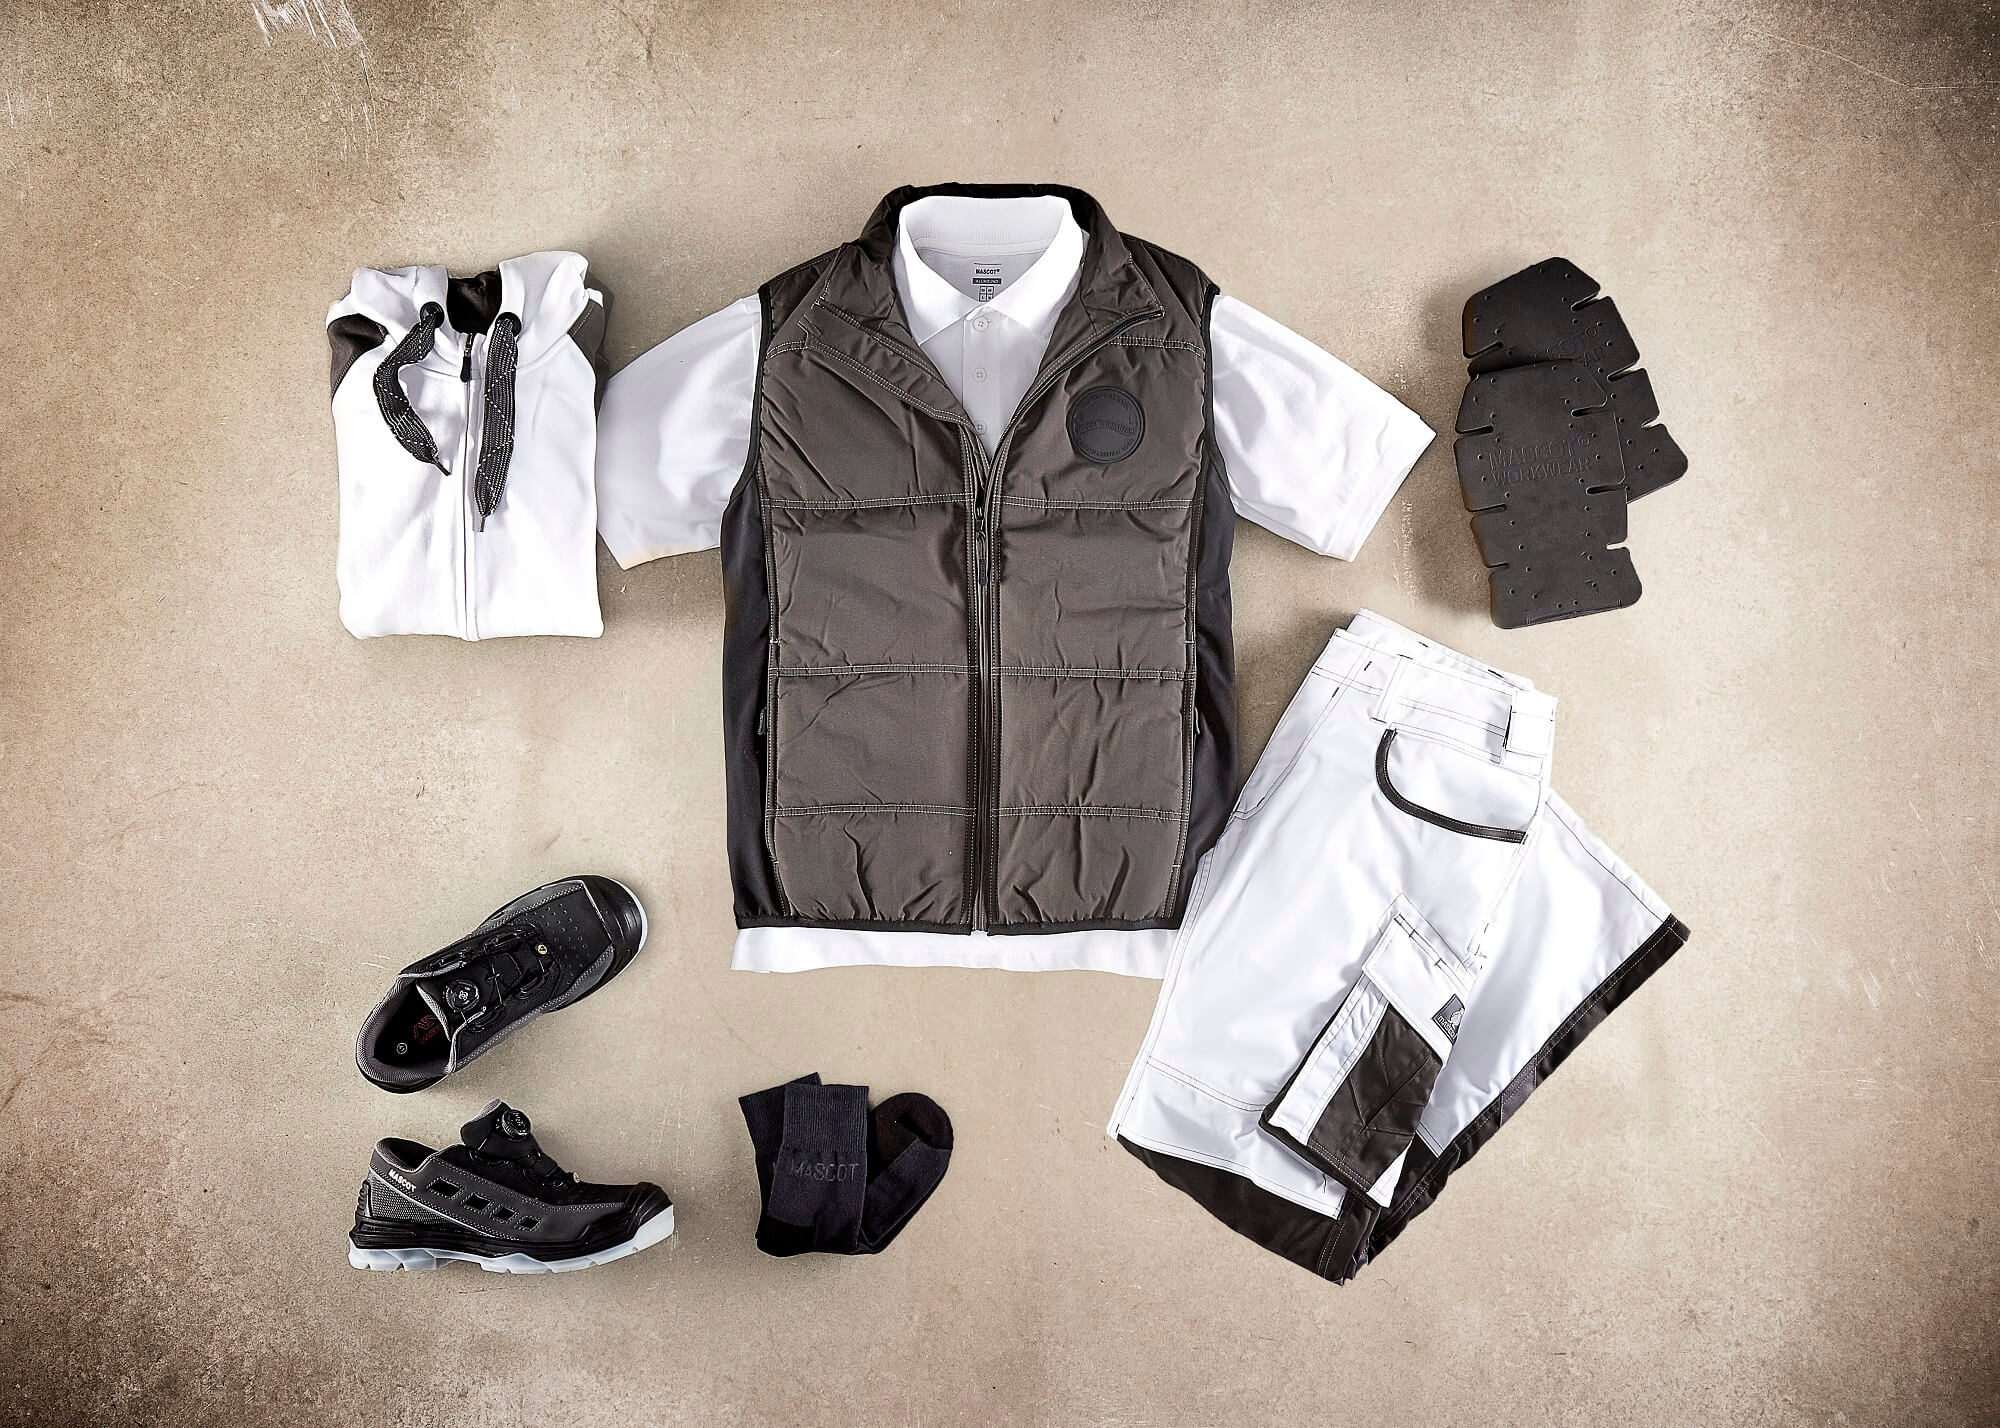 Thermal Gilet, Hoodie with zipper, Polo shirt, Trousers & Safety Sandal - White - Collage